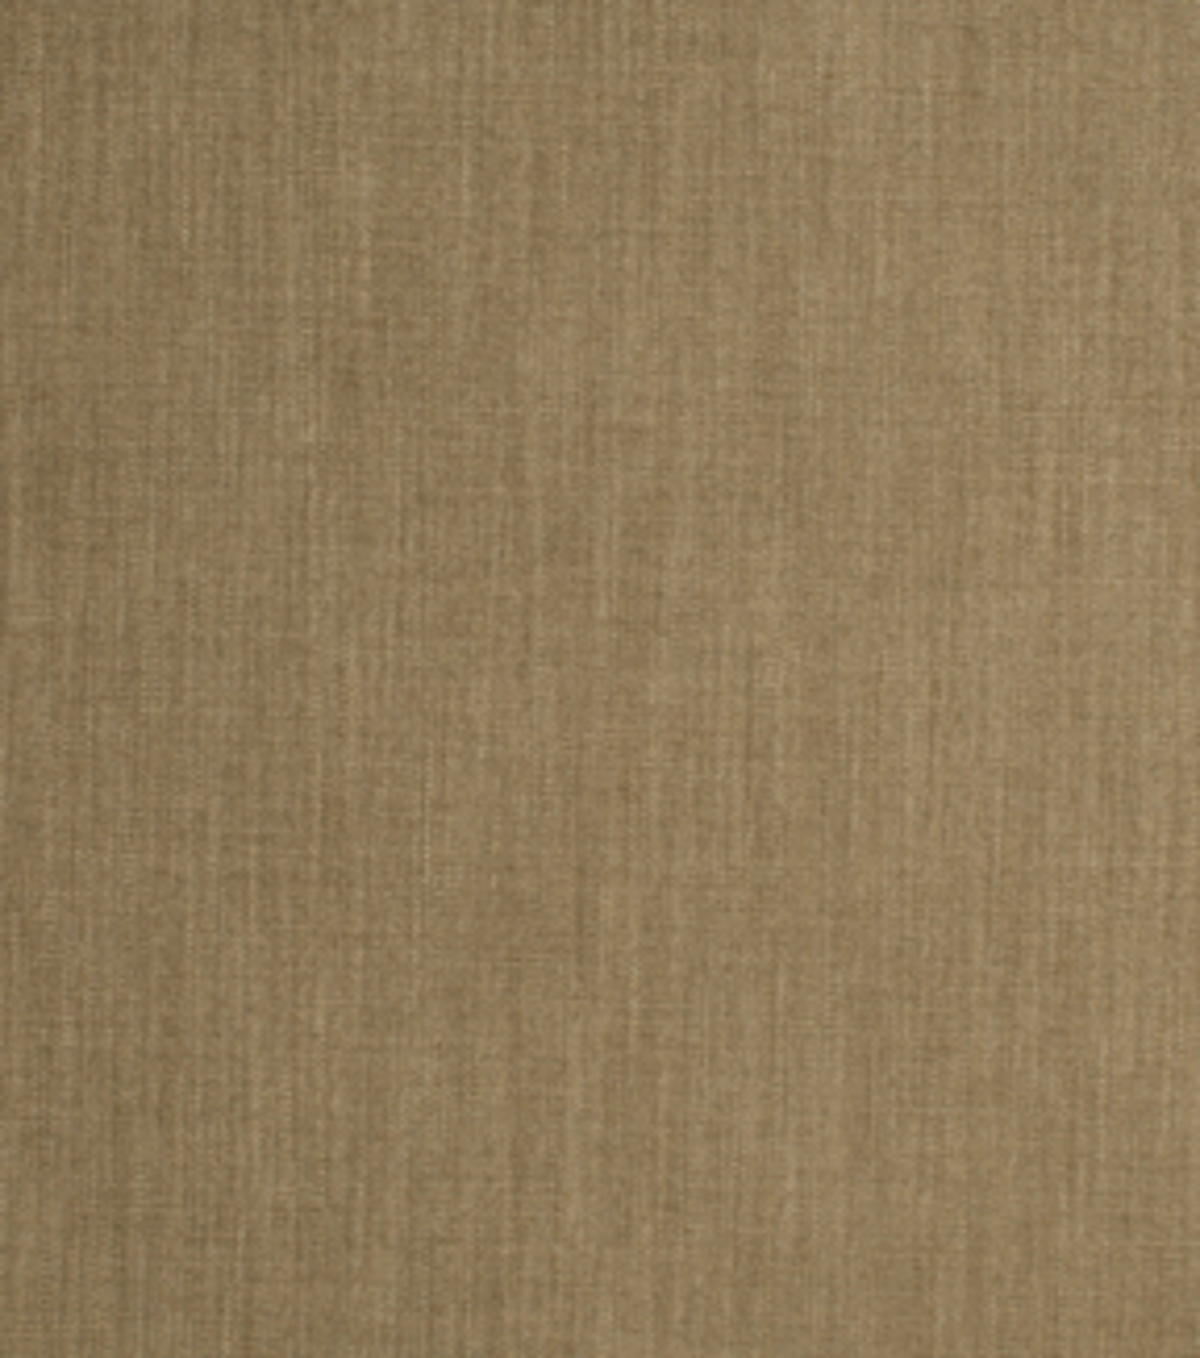 Home Decor 8\u0022x8\u0022 Fabric Swatch-Signature Series Media Taupe